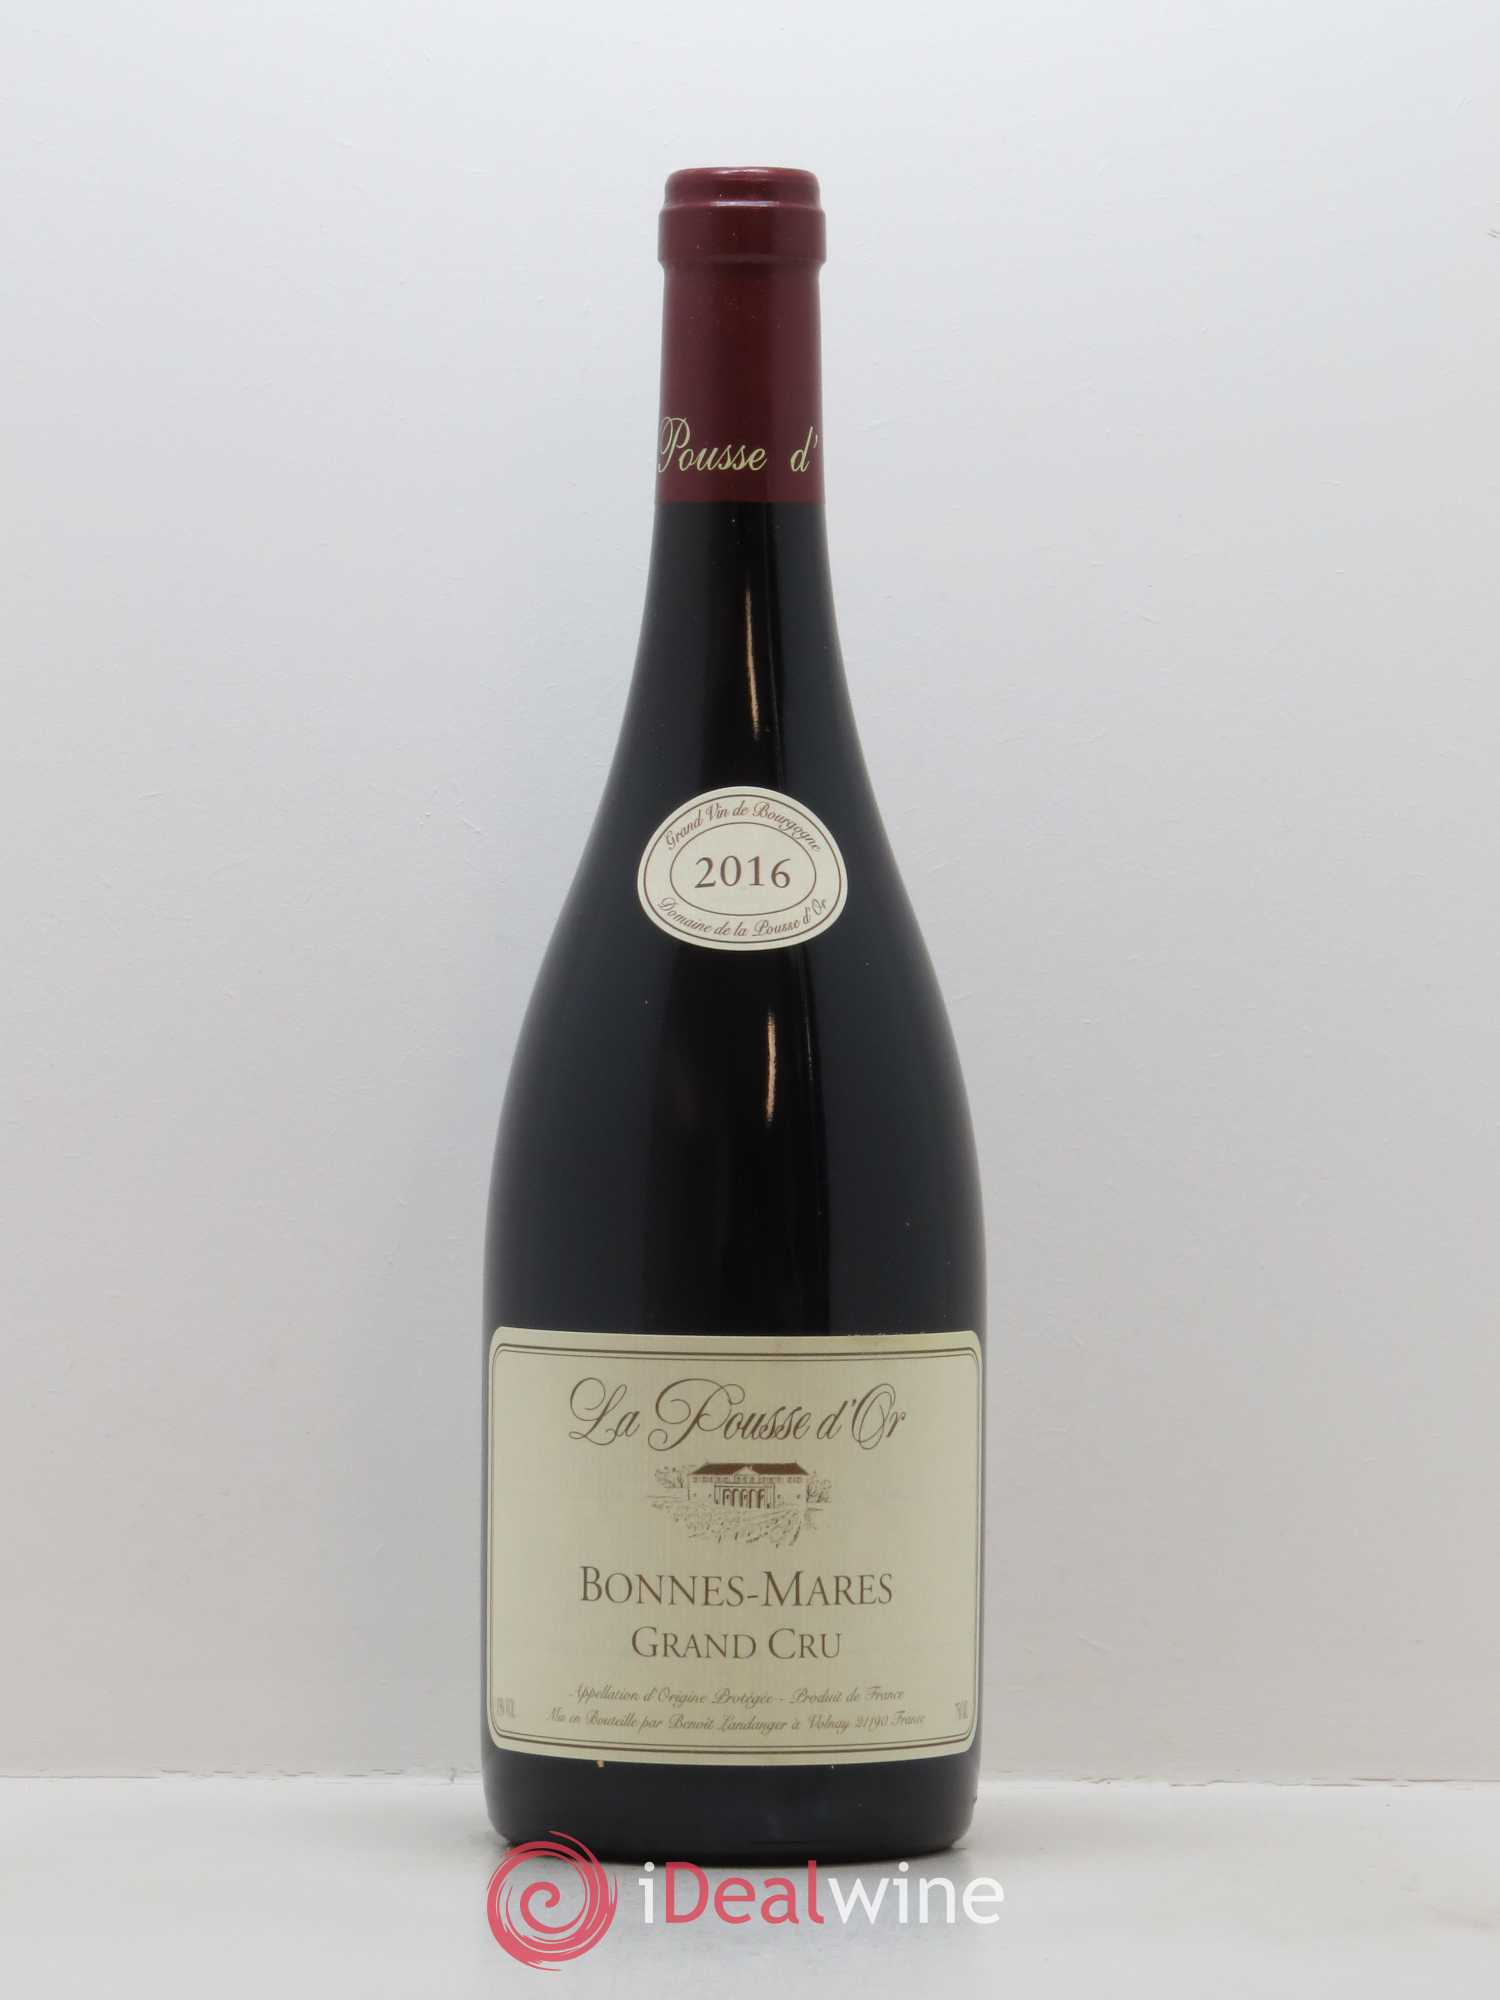 Bonnes-Mares Grand Cru La Pousse d'Or (Domaine de)  2016 - Lot of 1 Bottle